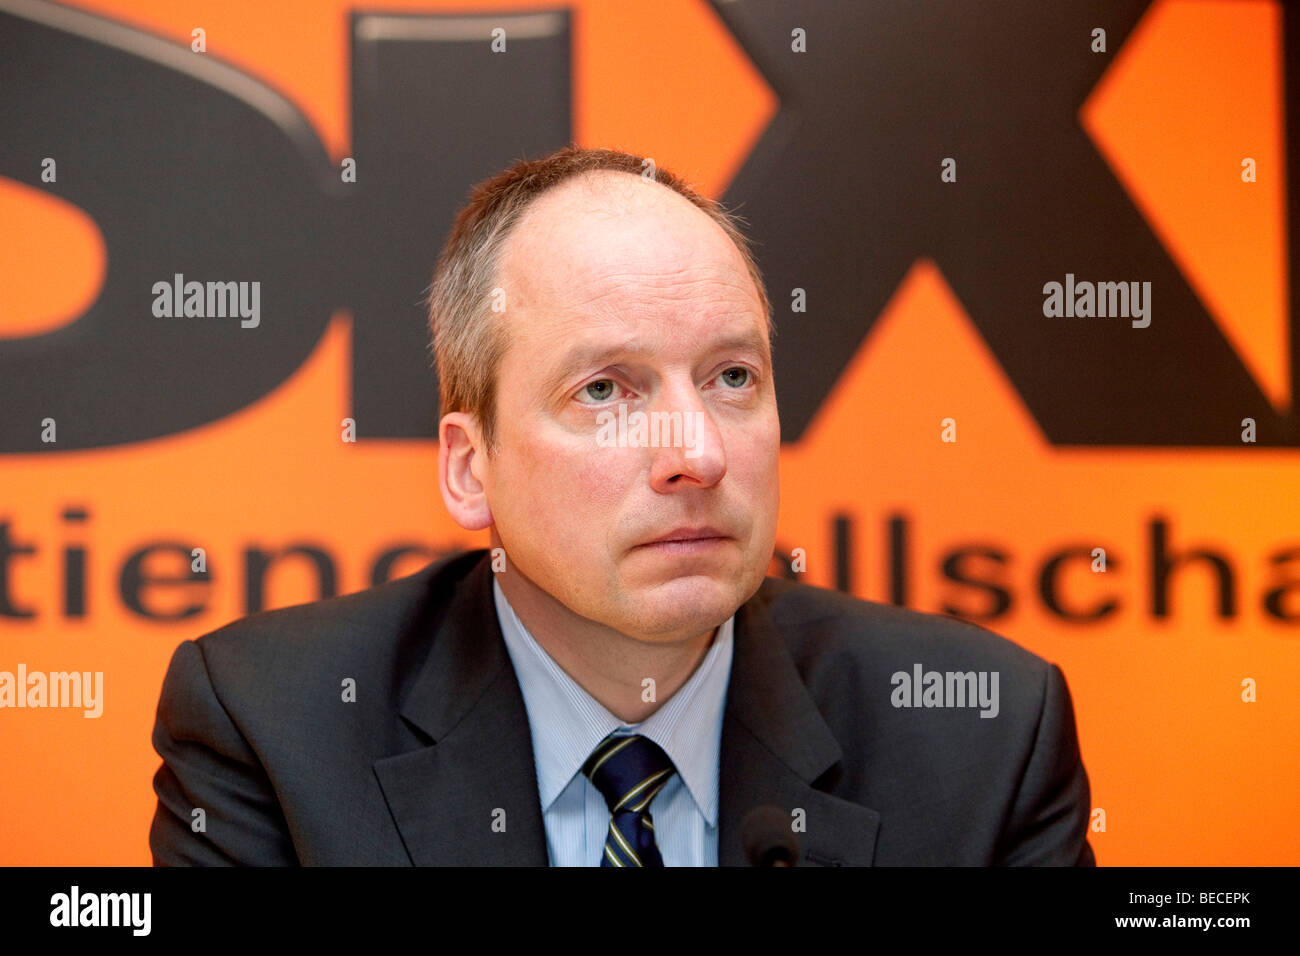 Karsten Odemann, chief financial officer of the Sixt AG, during the press conference on financial statements, 19.03.2009 - Stock Image